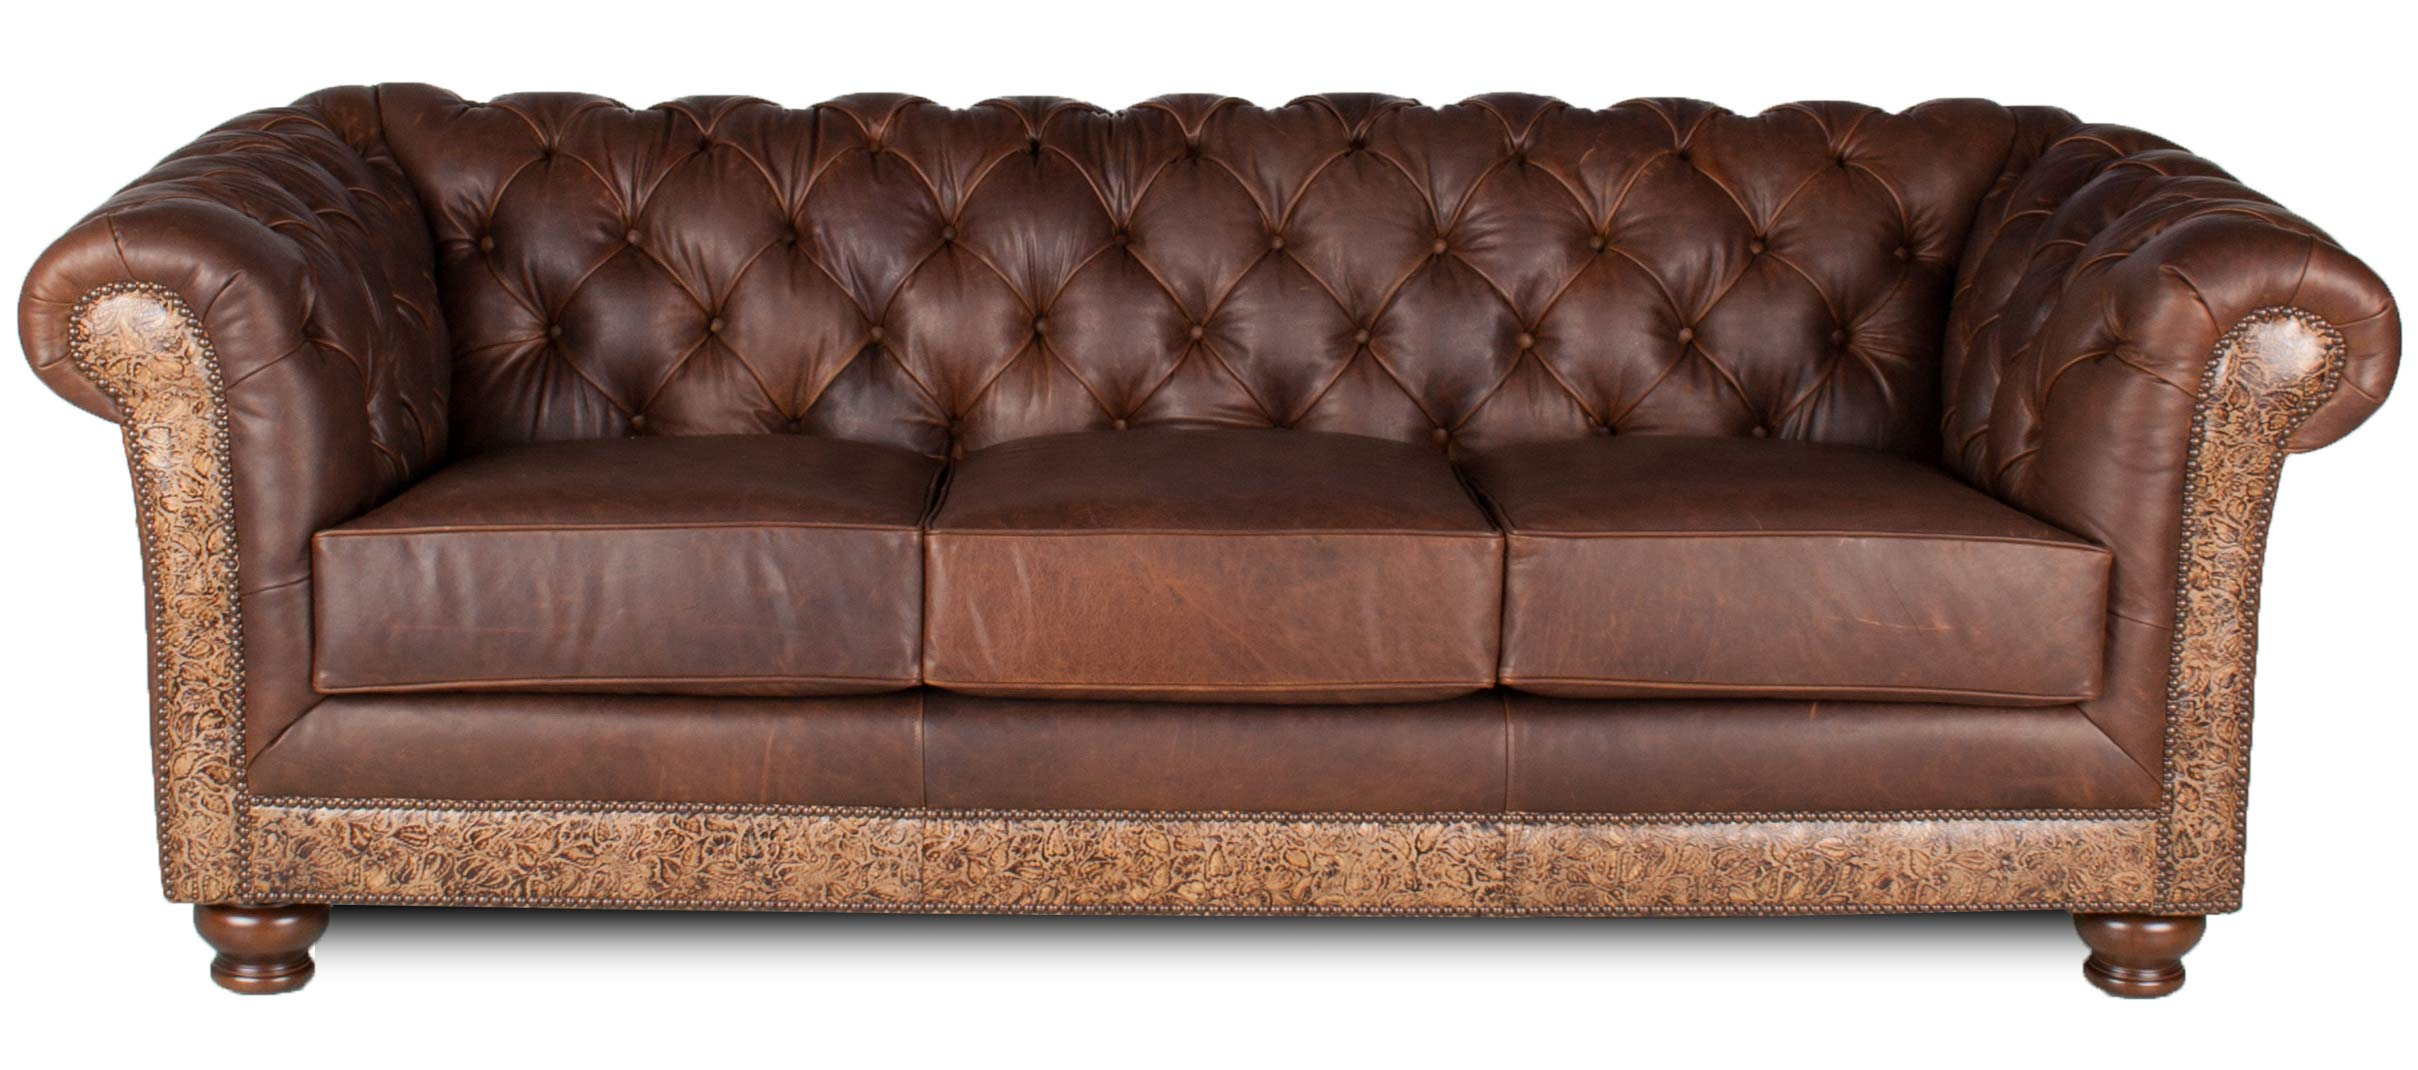 executive - leather furniture CRZFZSK